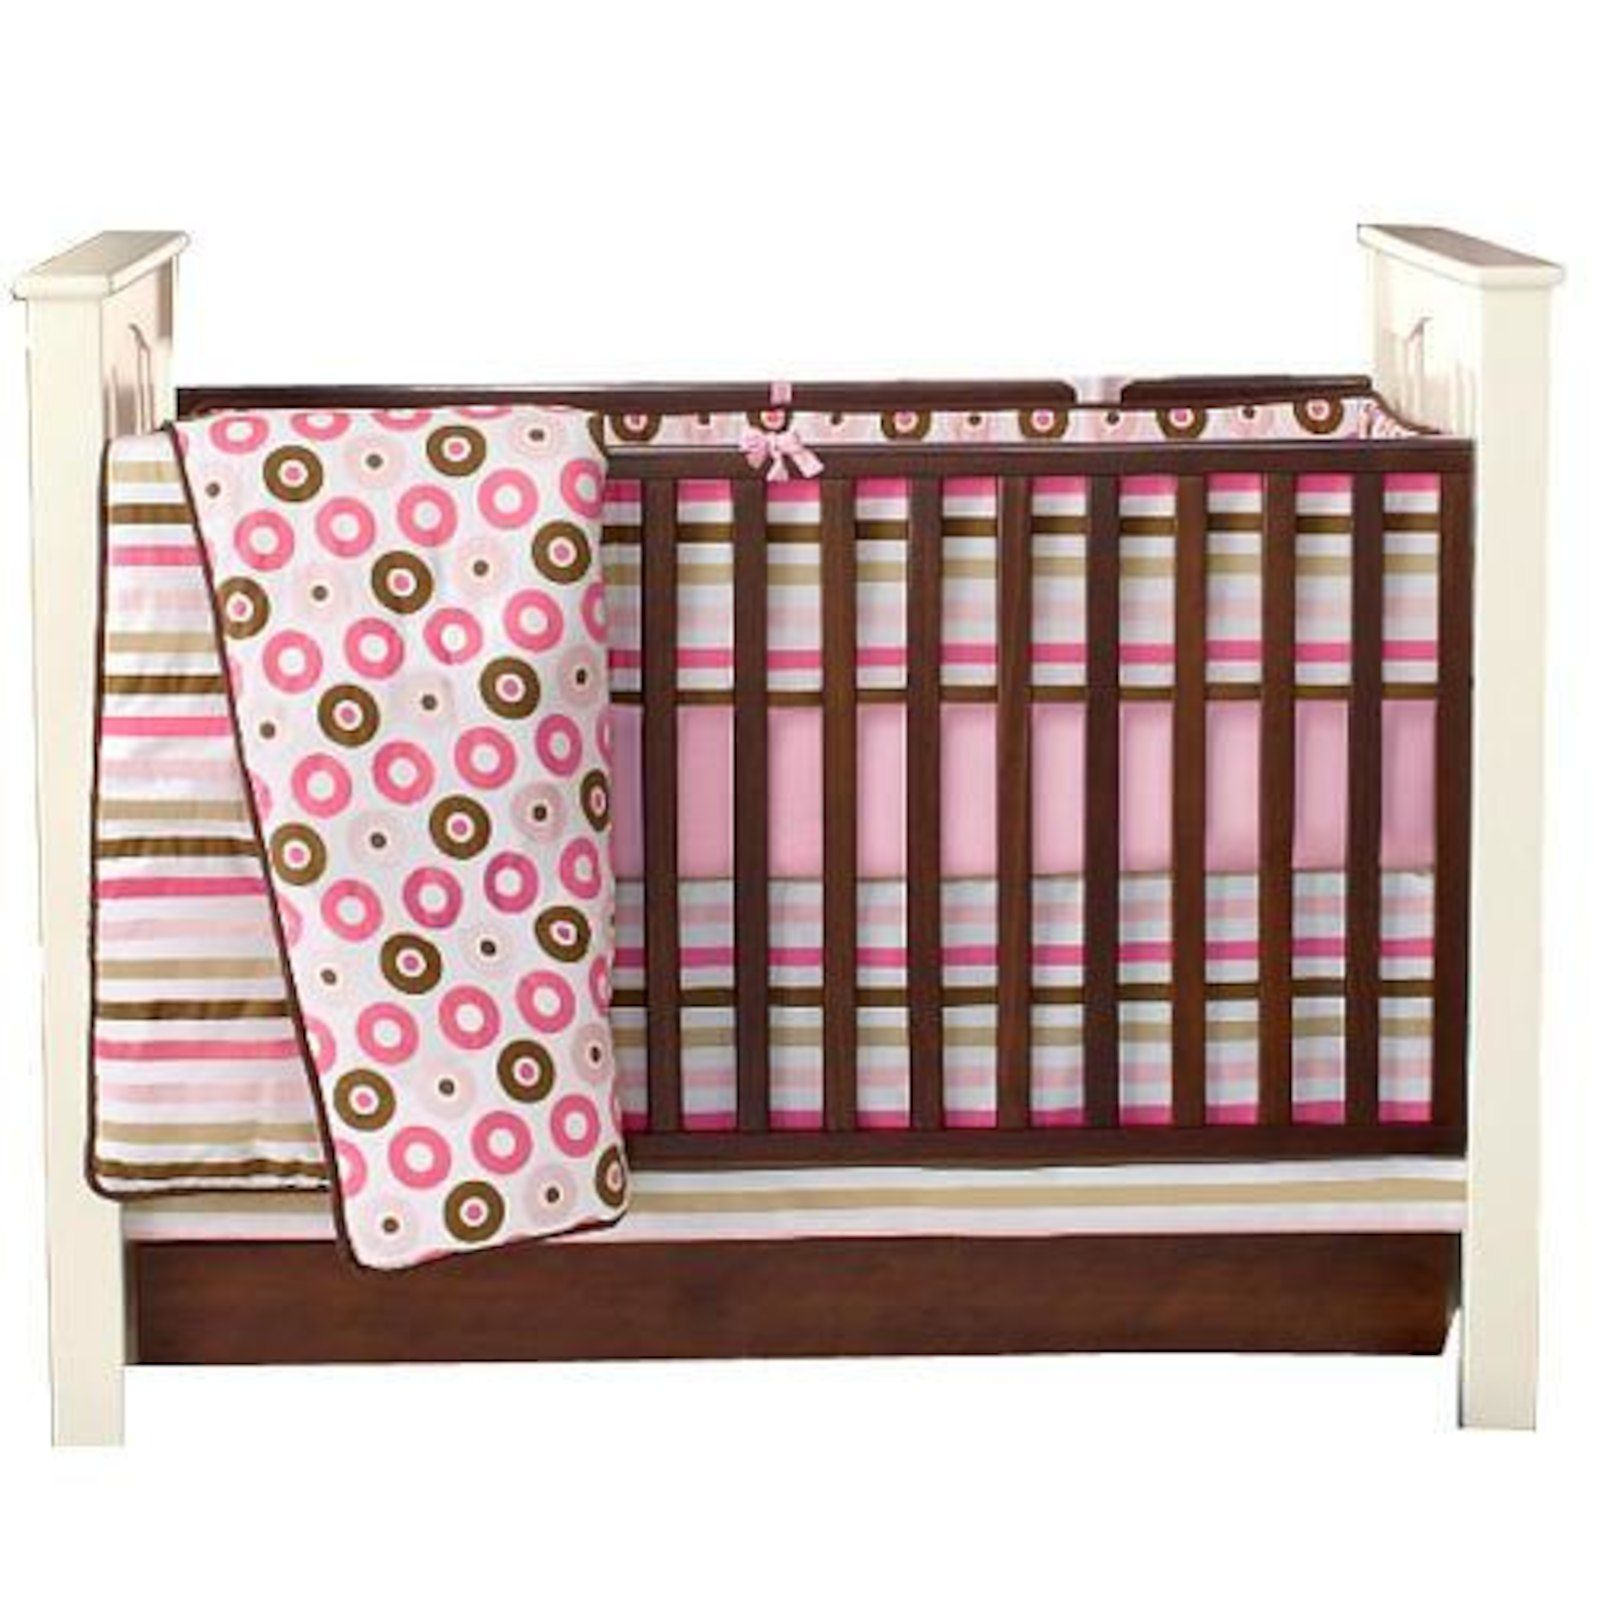 nursery quilt baby bedding of room sets full zag crib cot important peanut boy cribs elements yellow pink for set a ideas the and fitted ruffle shell grey zig size dust elephant most blue gray sheet trim elephants with girl piece